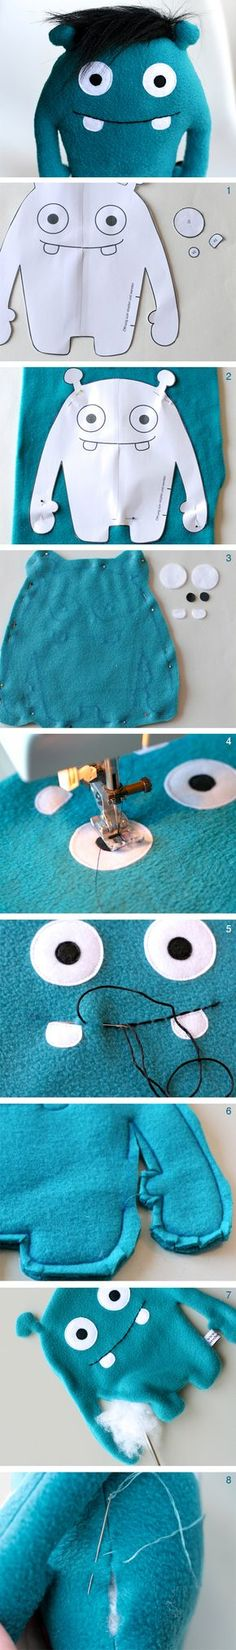 DIY sewing instructions for a cute monster made of plush, DIY toys / diy sewing tutorial for a cuddl Sewing Hacks, Sewing Crafts, Sewing Projects, Sewing Tutorials, Ugly Dolls, Monster Dolls, Diy Couture, Fabric Toys, Cute Monsters